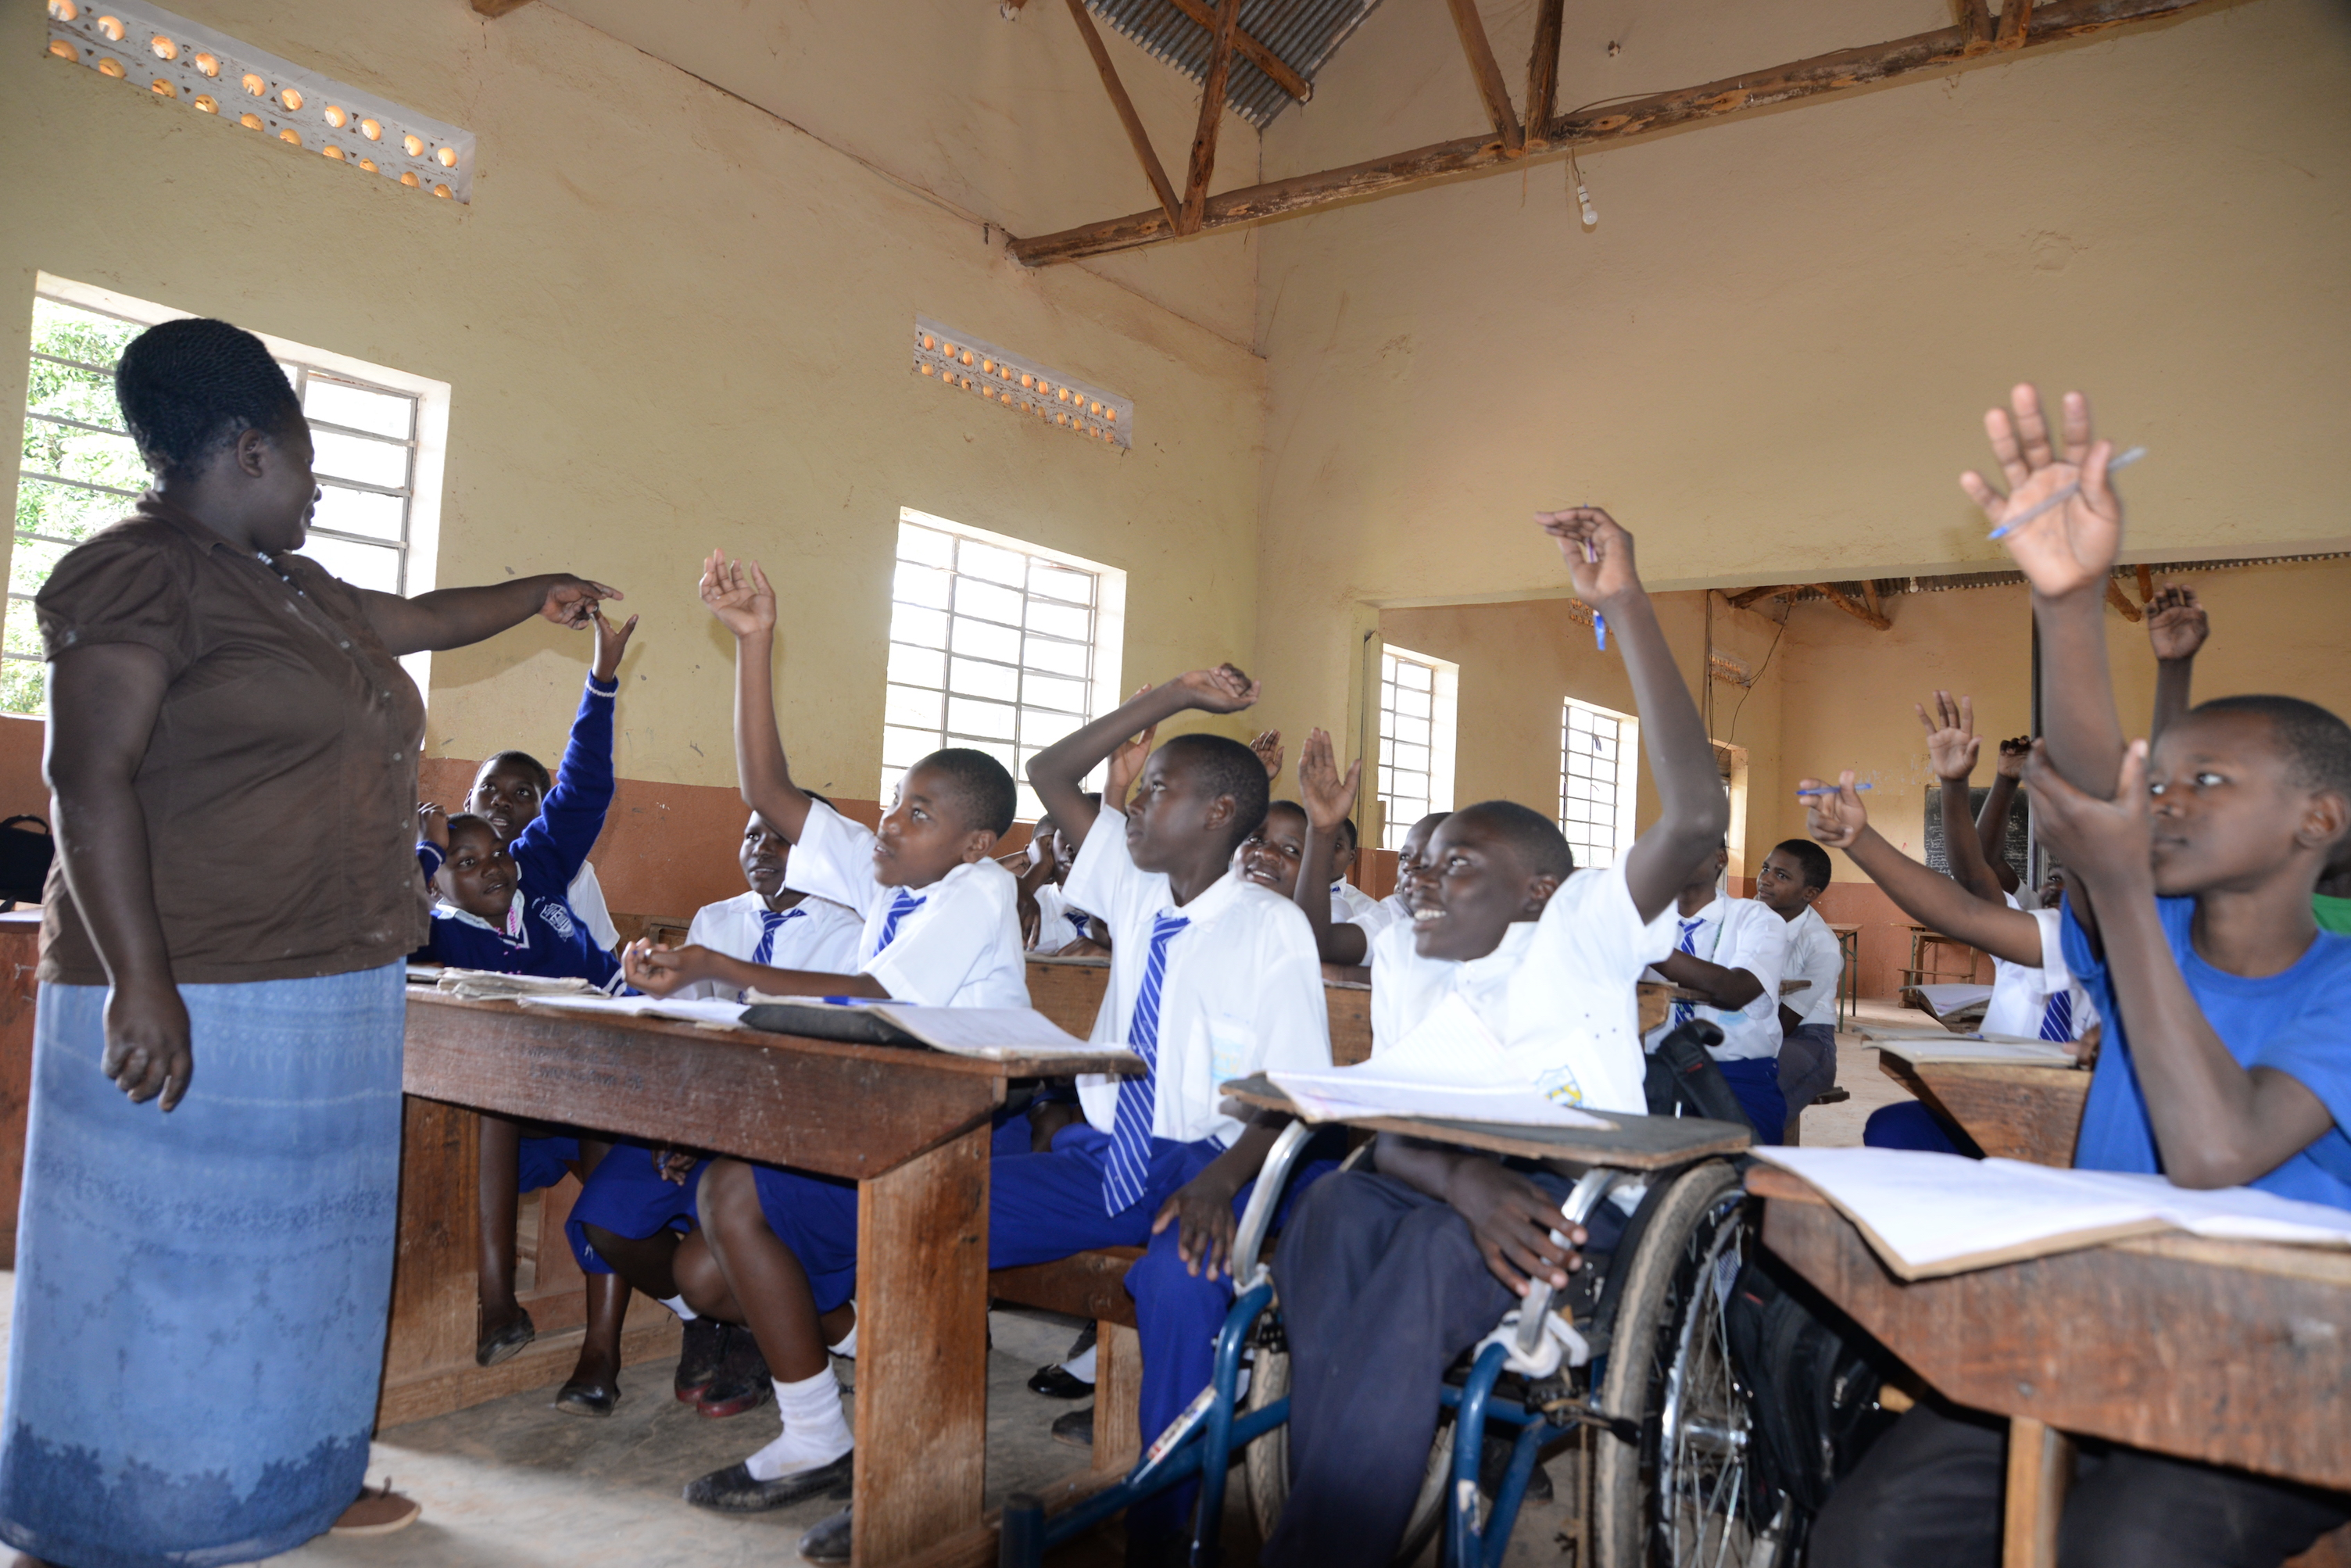 Ashiraf is able to participate in all school activities because of the wheelchair.